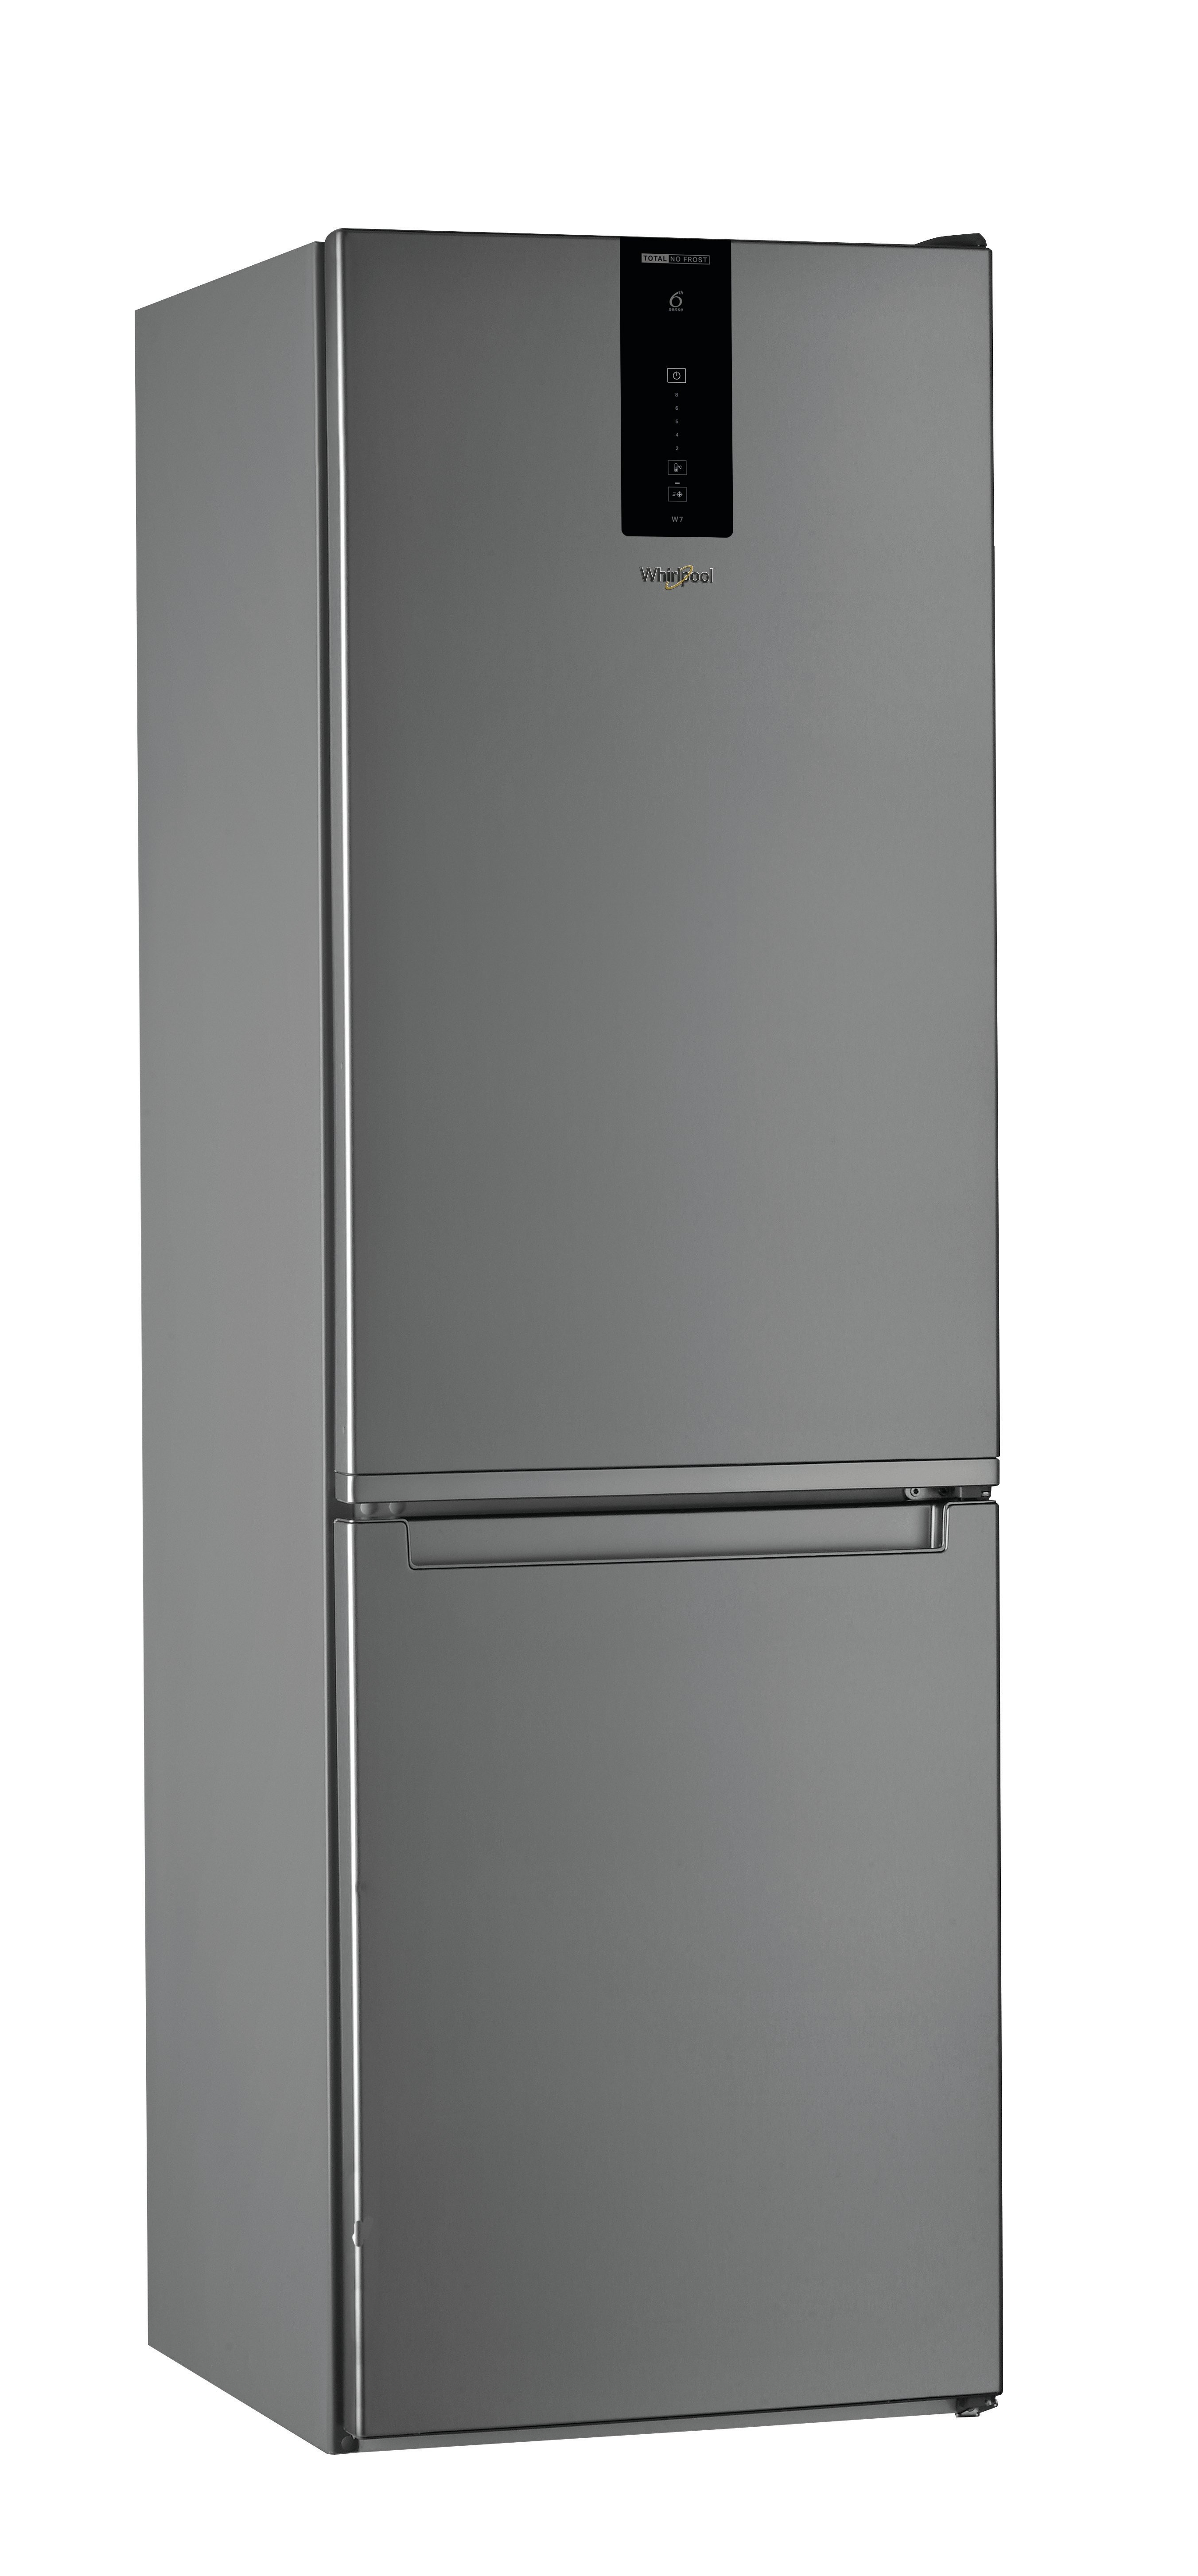 Frigorífico Combi Whirlpool W7821OOX | Total No Frost |   | 189x59,6 cm